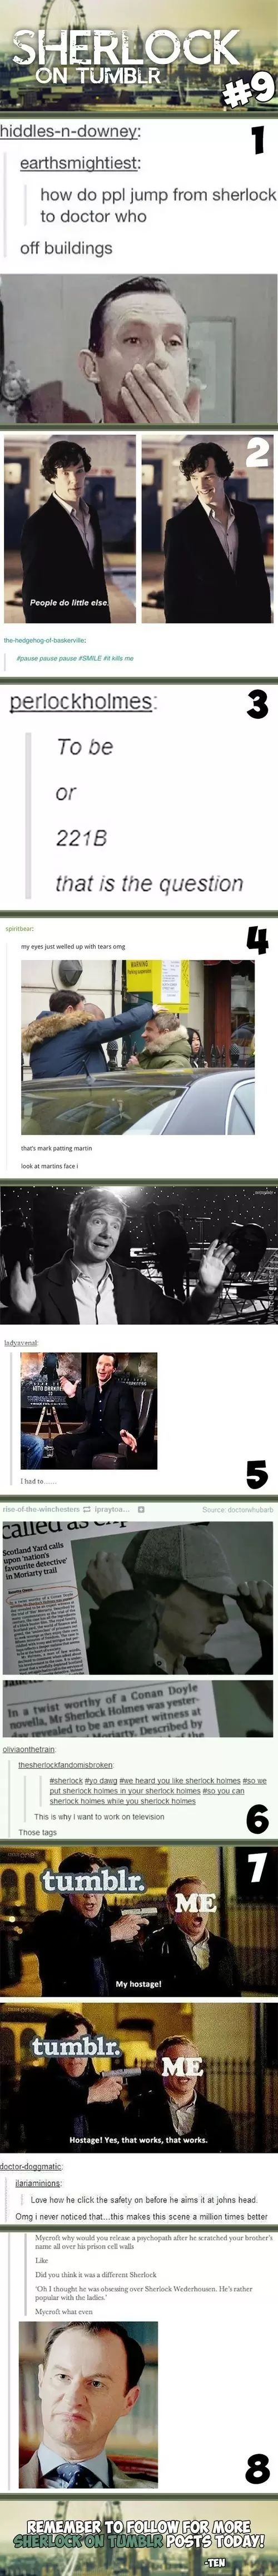 Sherlock On Tumblr #9. The last one got me.